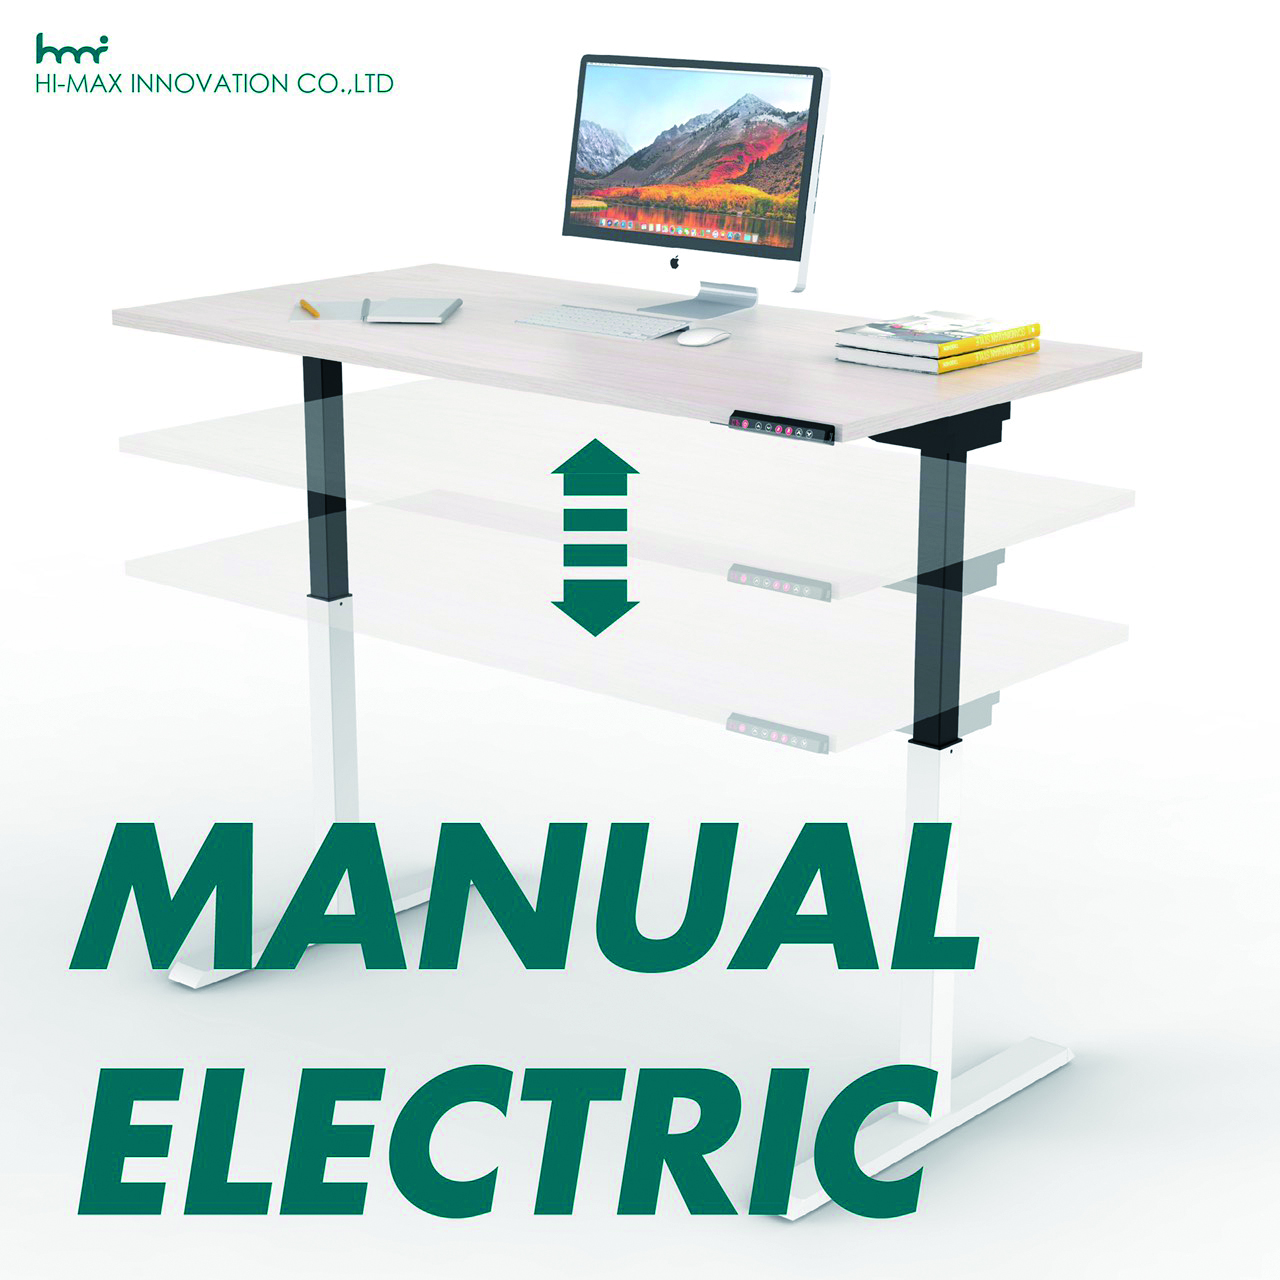 Hi-Maxs height-adjustable desks, coming in manual and electric types, are adaptable in any environment. (photo provided by Hi-Max)